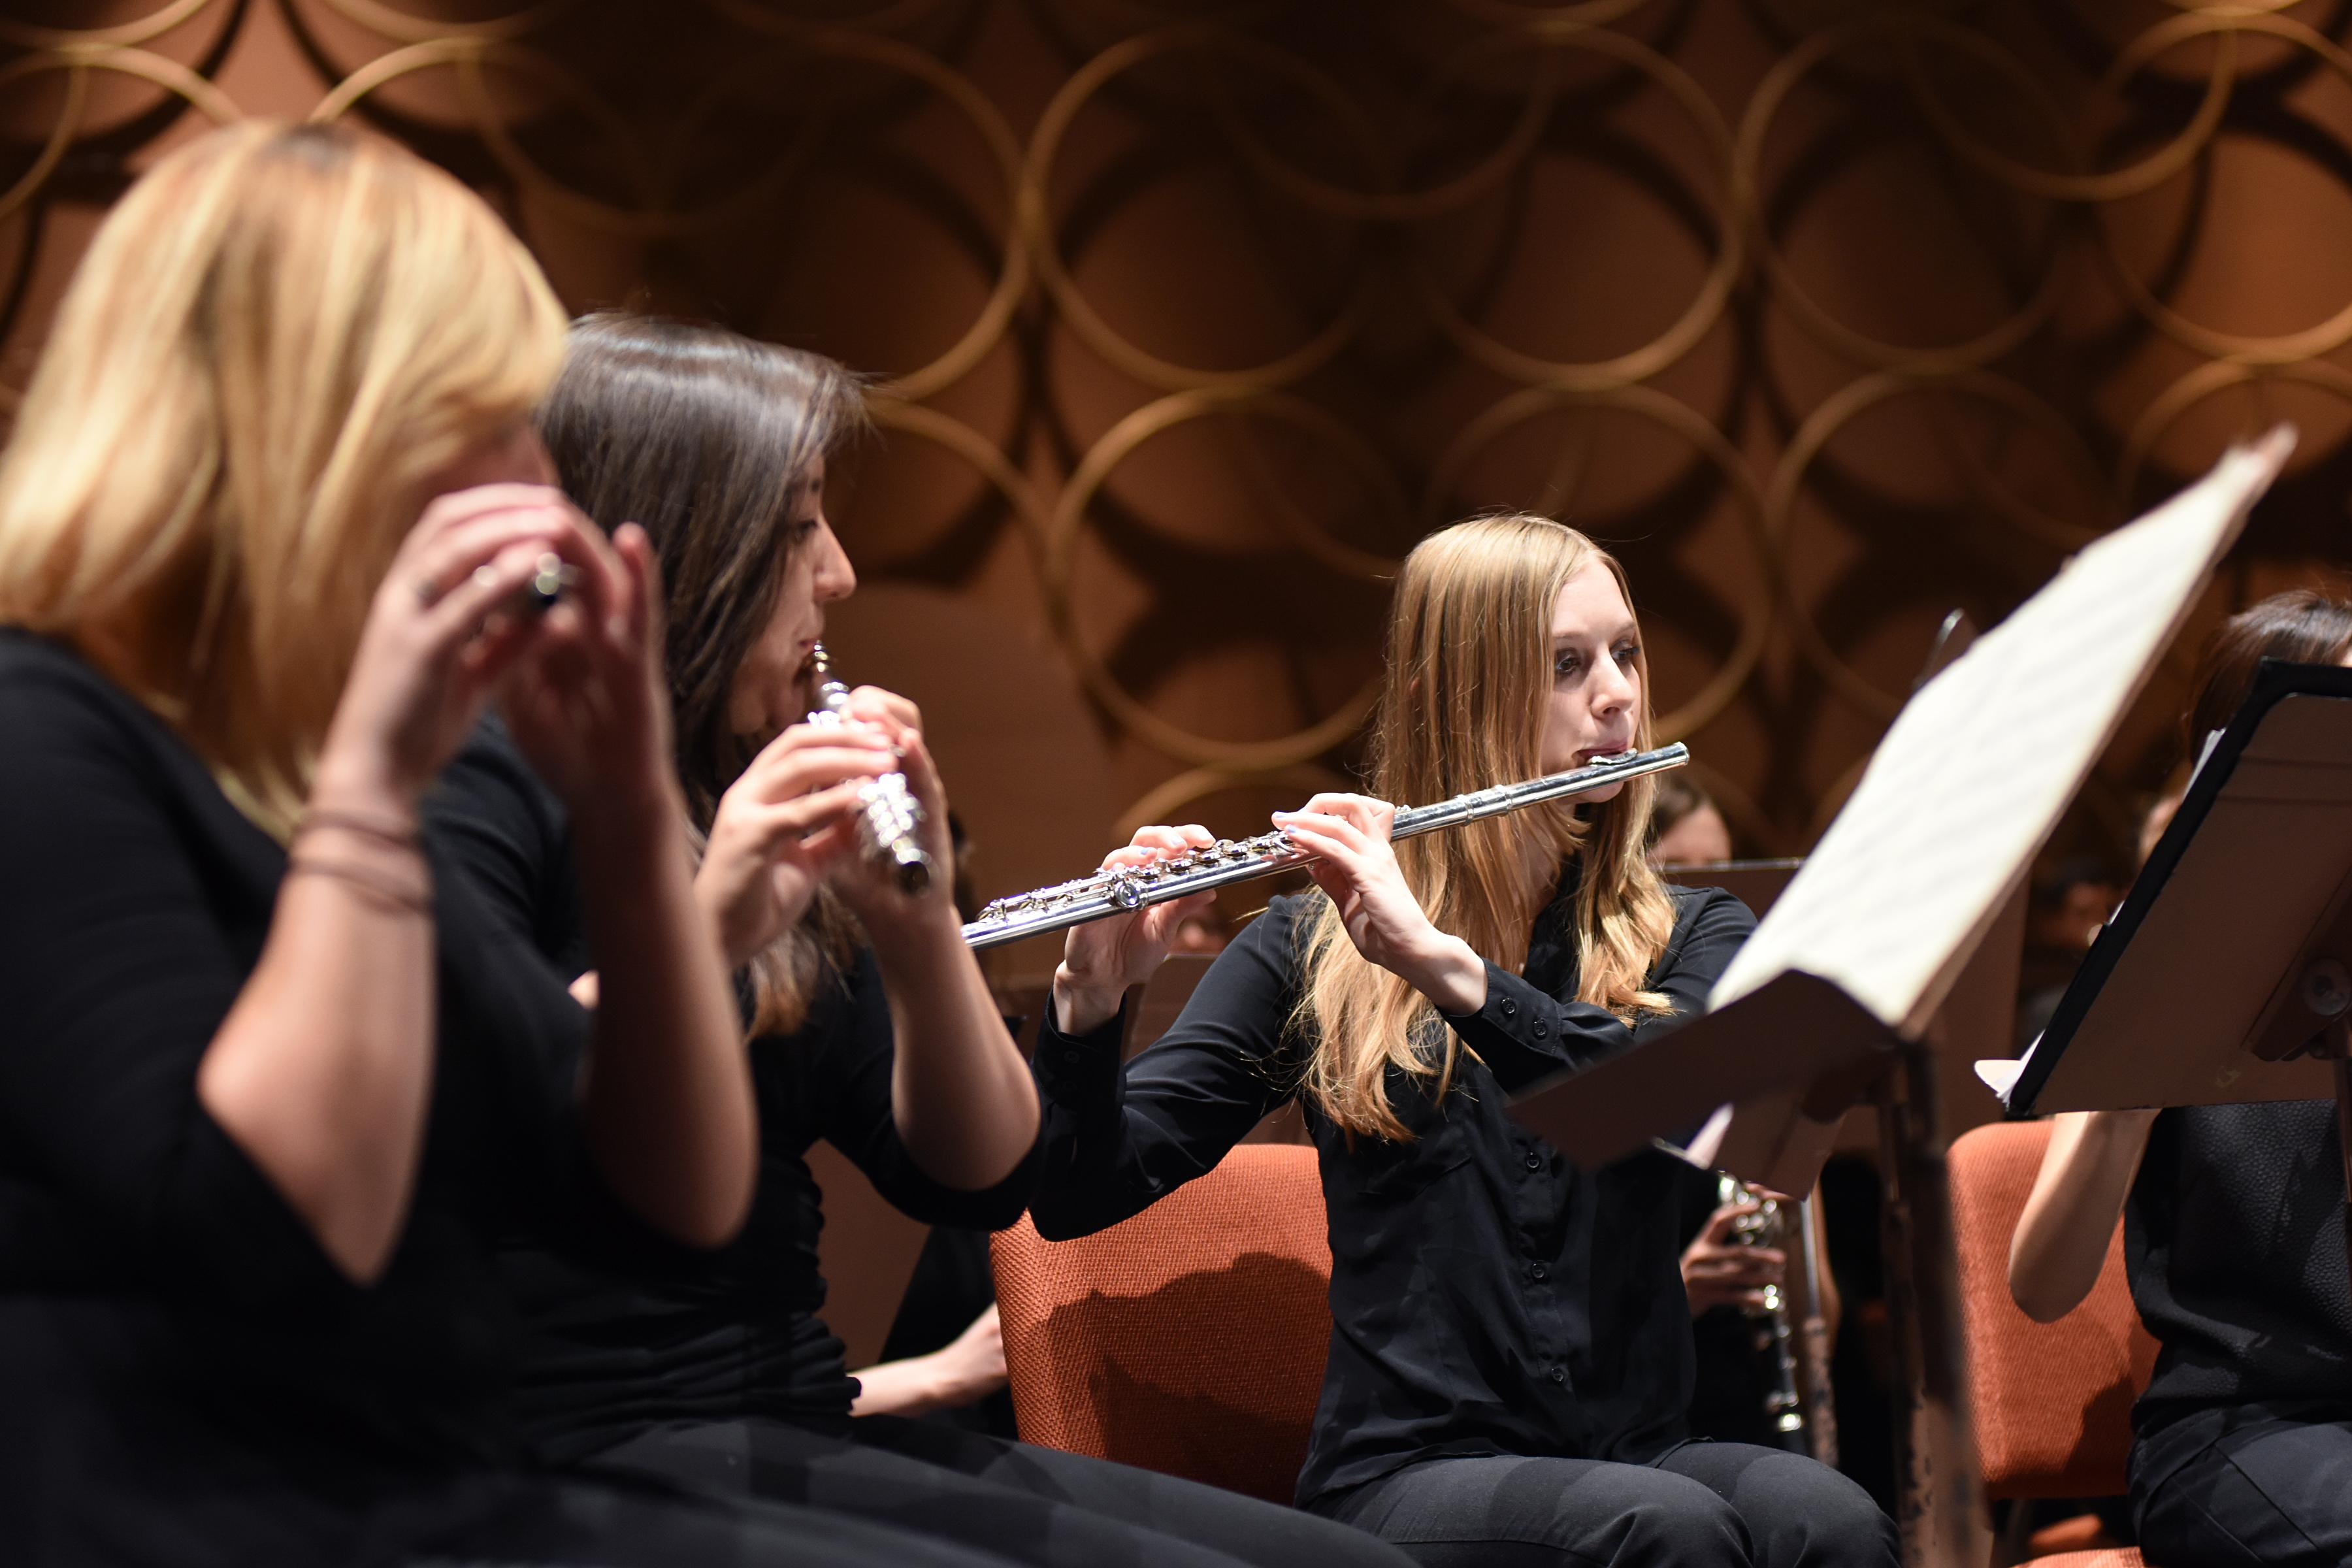 Women play flutes on stage.